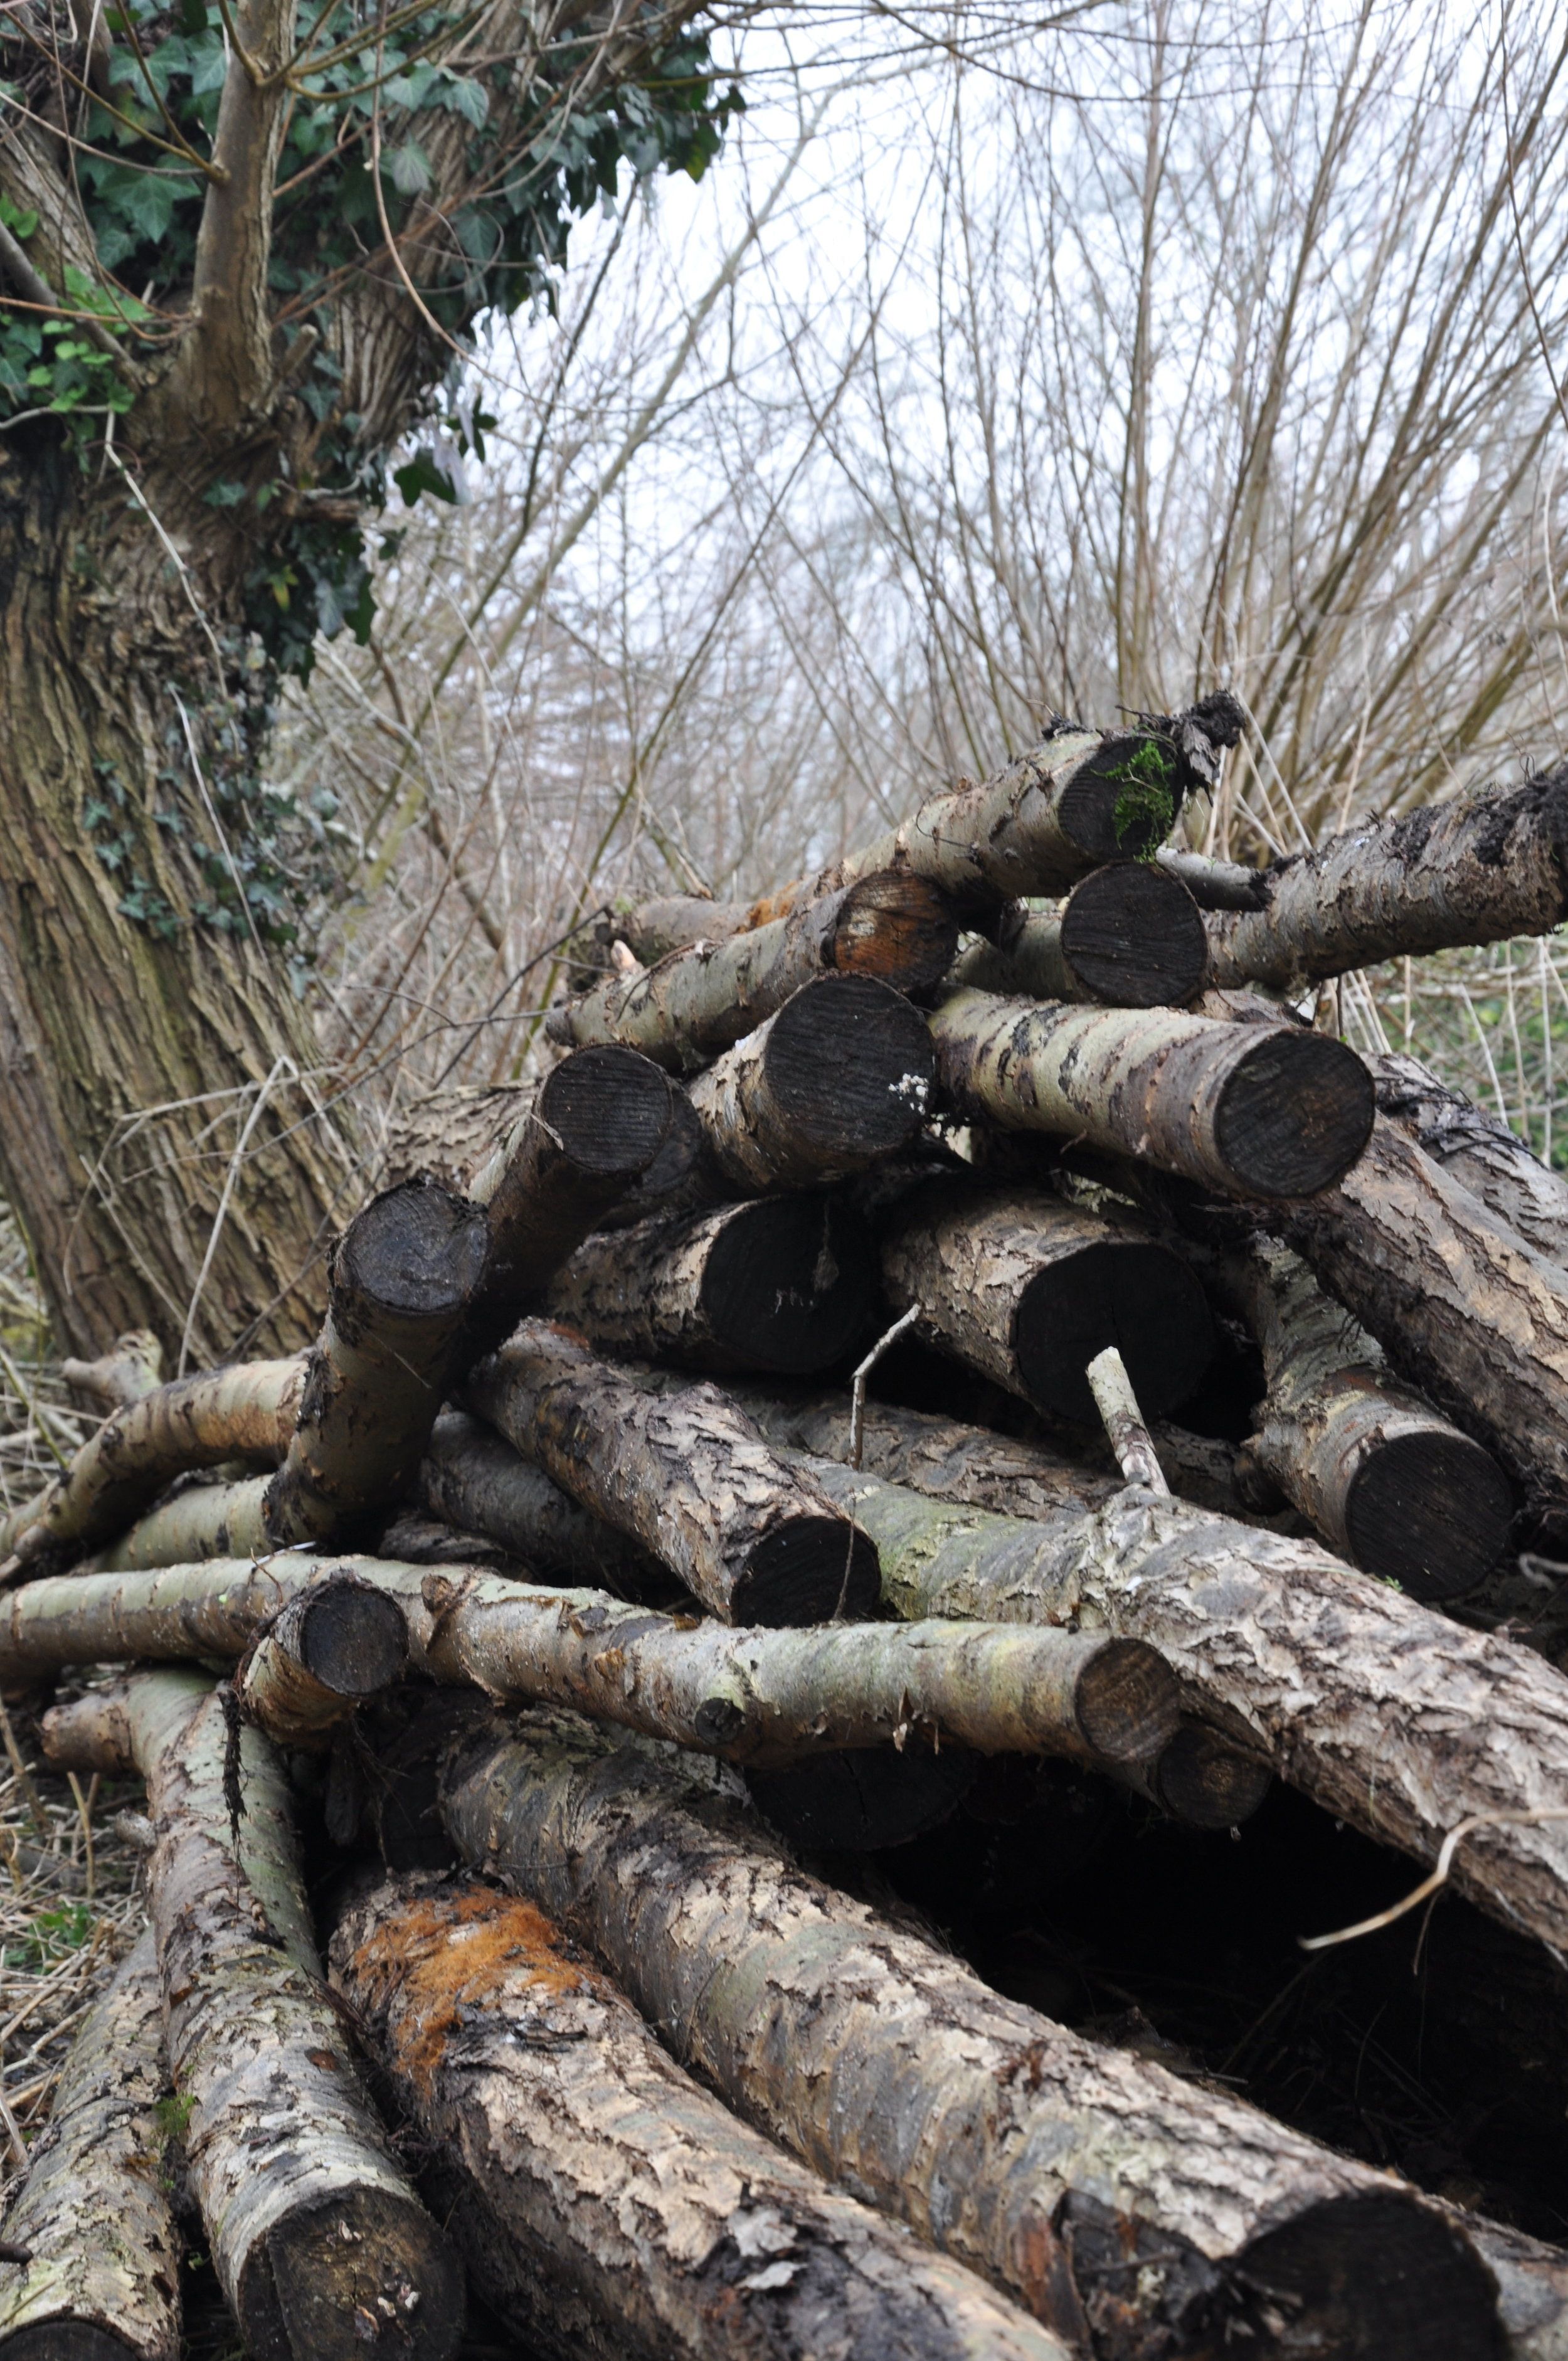 The Log reserved for the insect stockades.